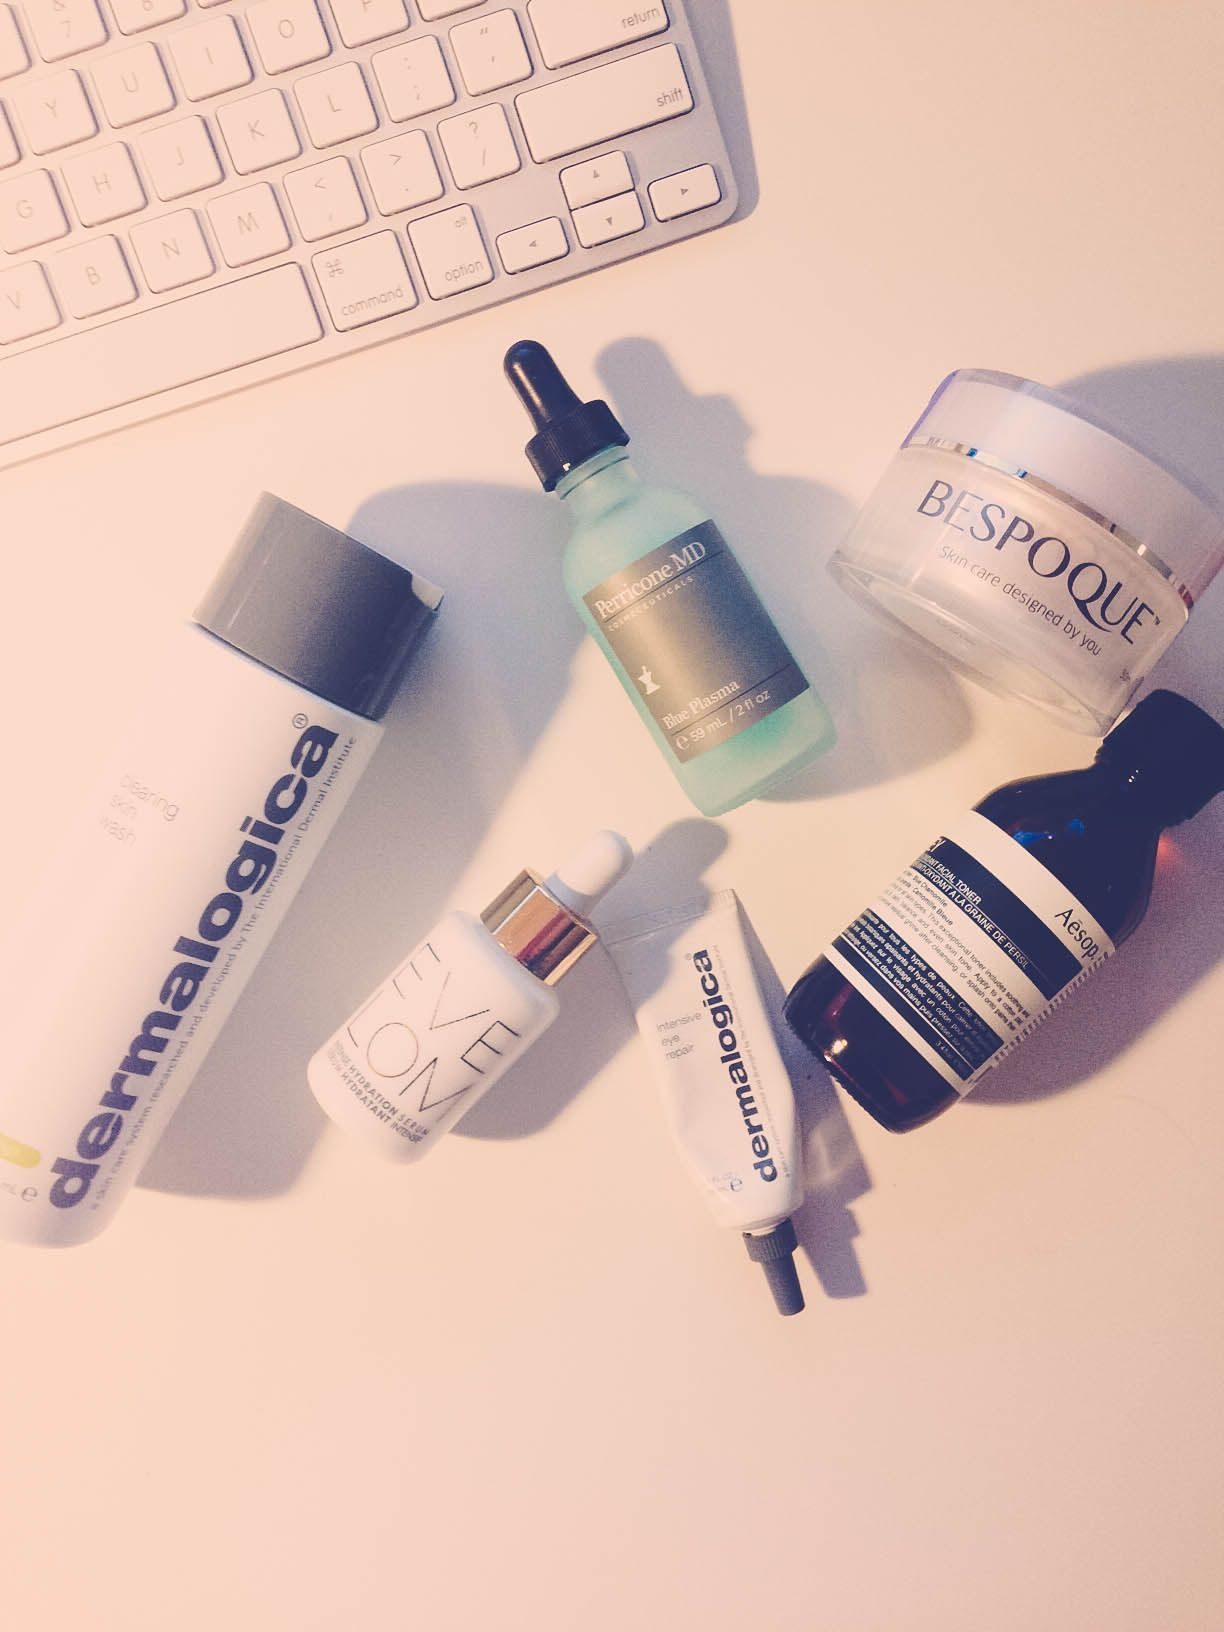 What Order Should You Apply Skin Care Products? Skin